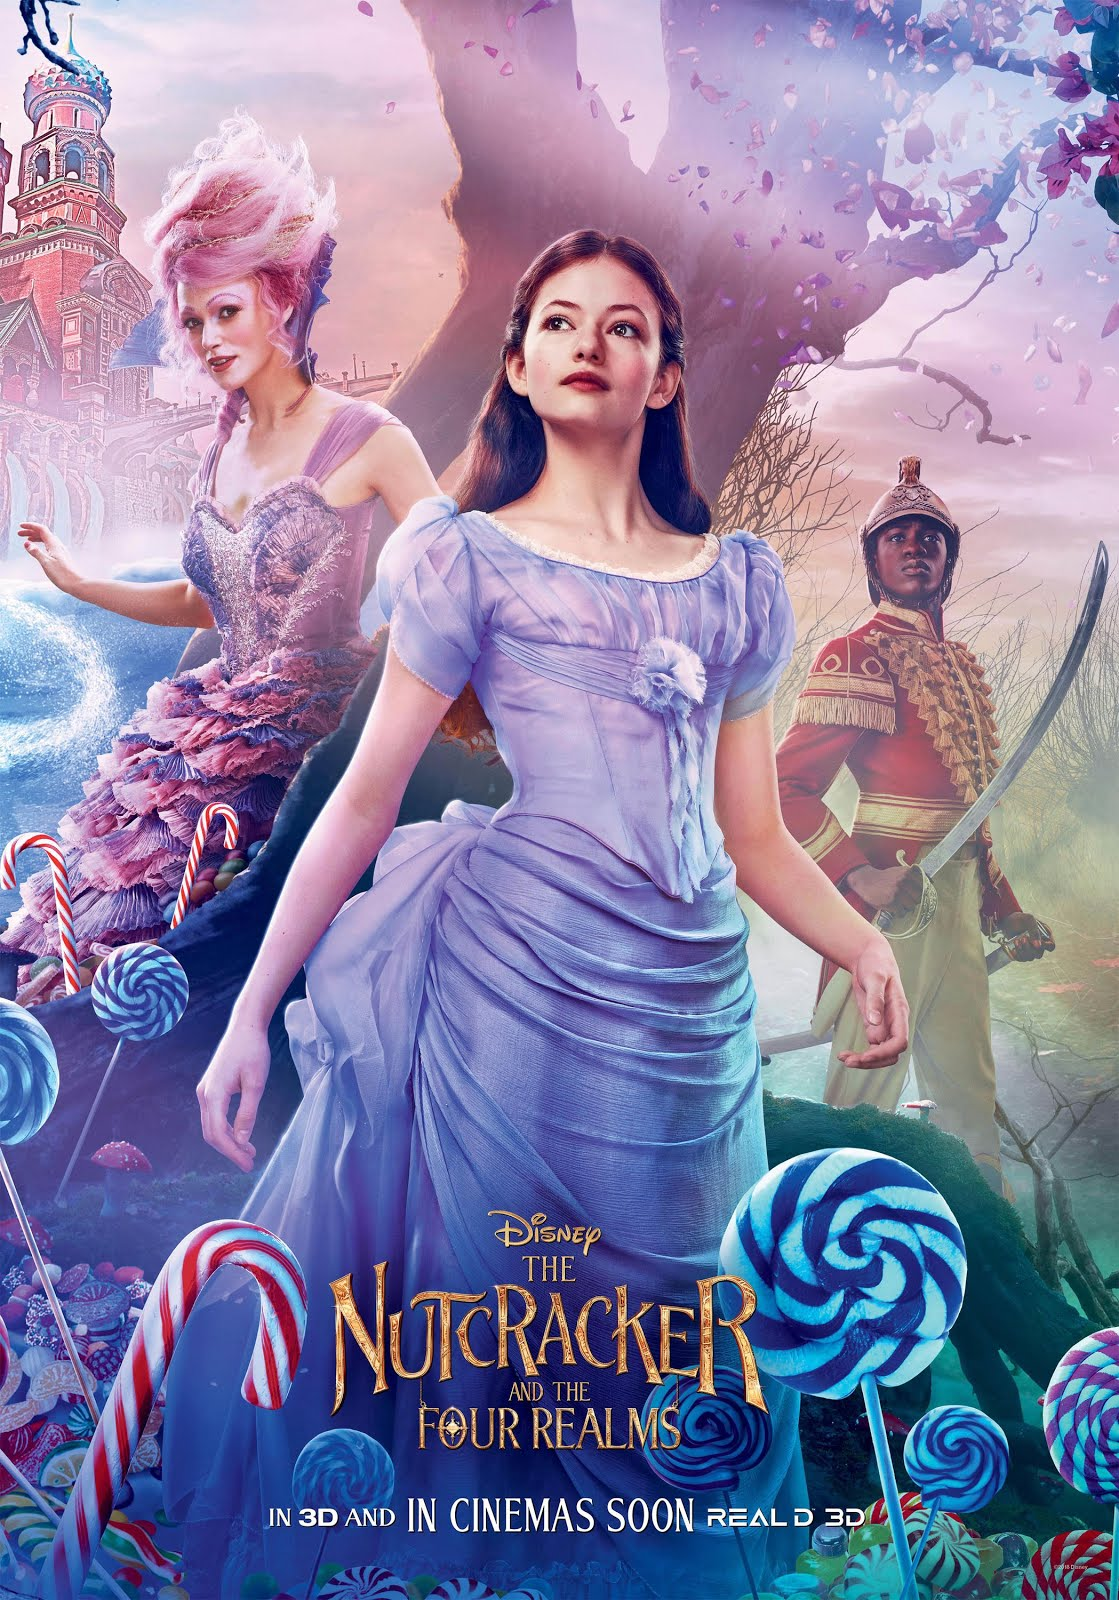 The Nutcracker and the Four Realms (2018) full hd Dual Audio [Hindi-English] BluRay 720p ESubs